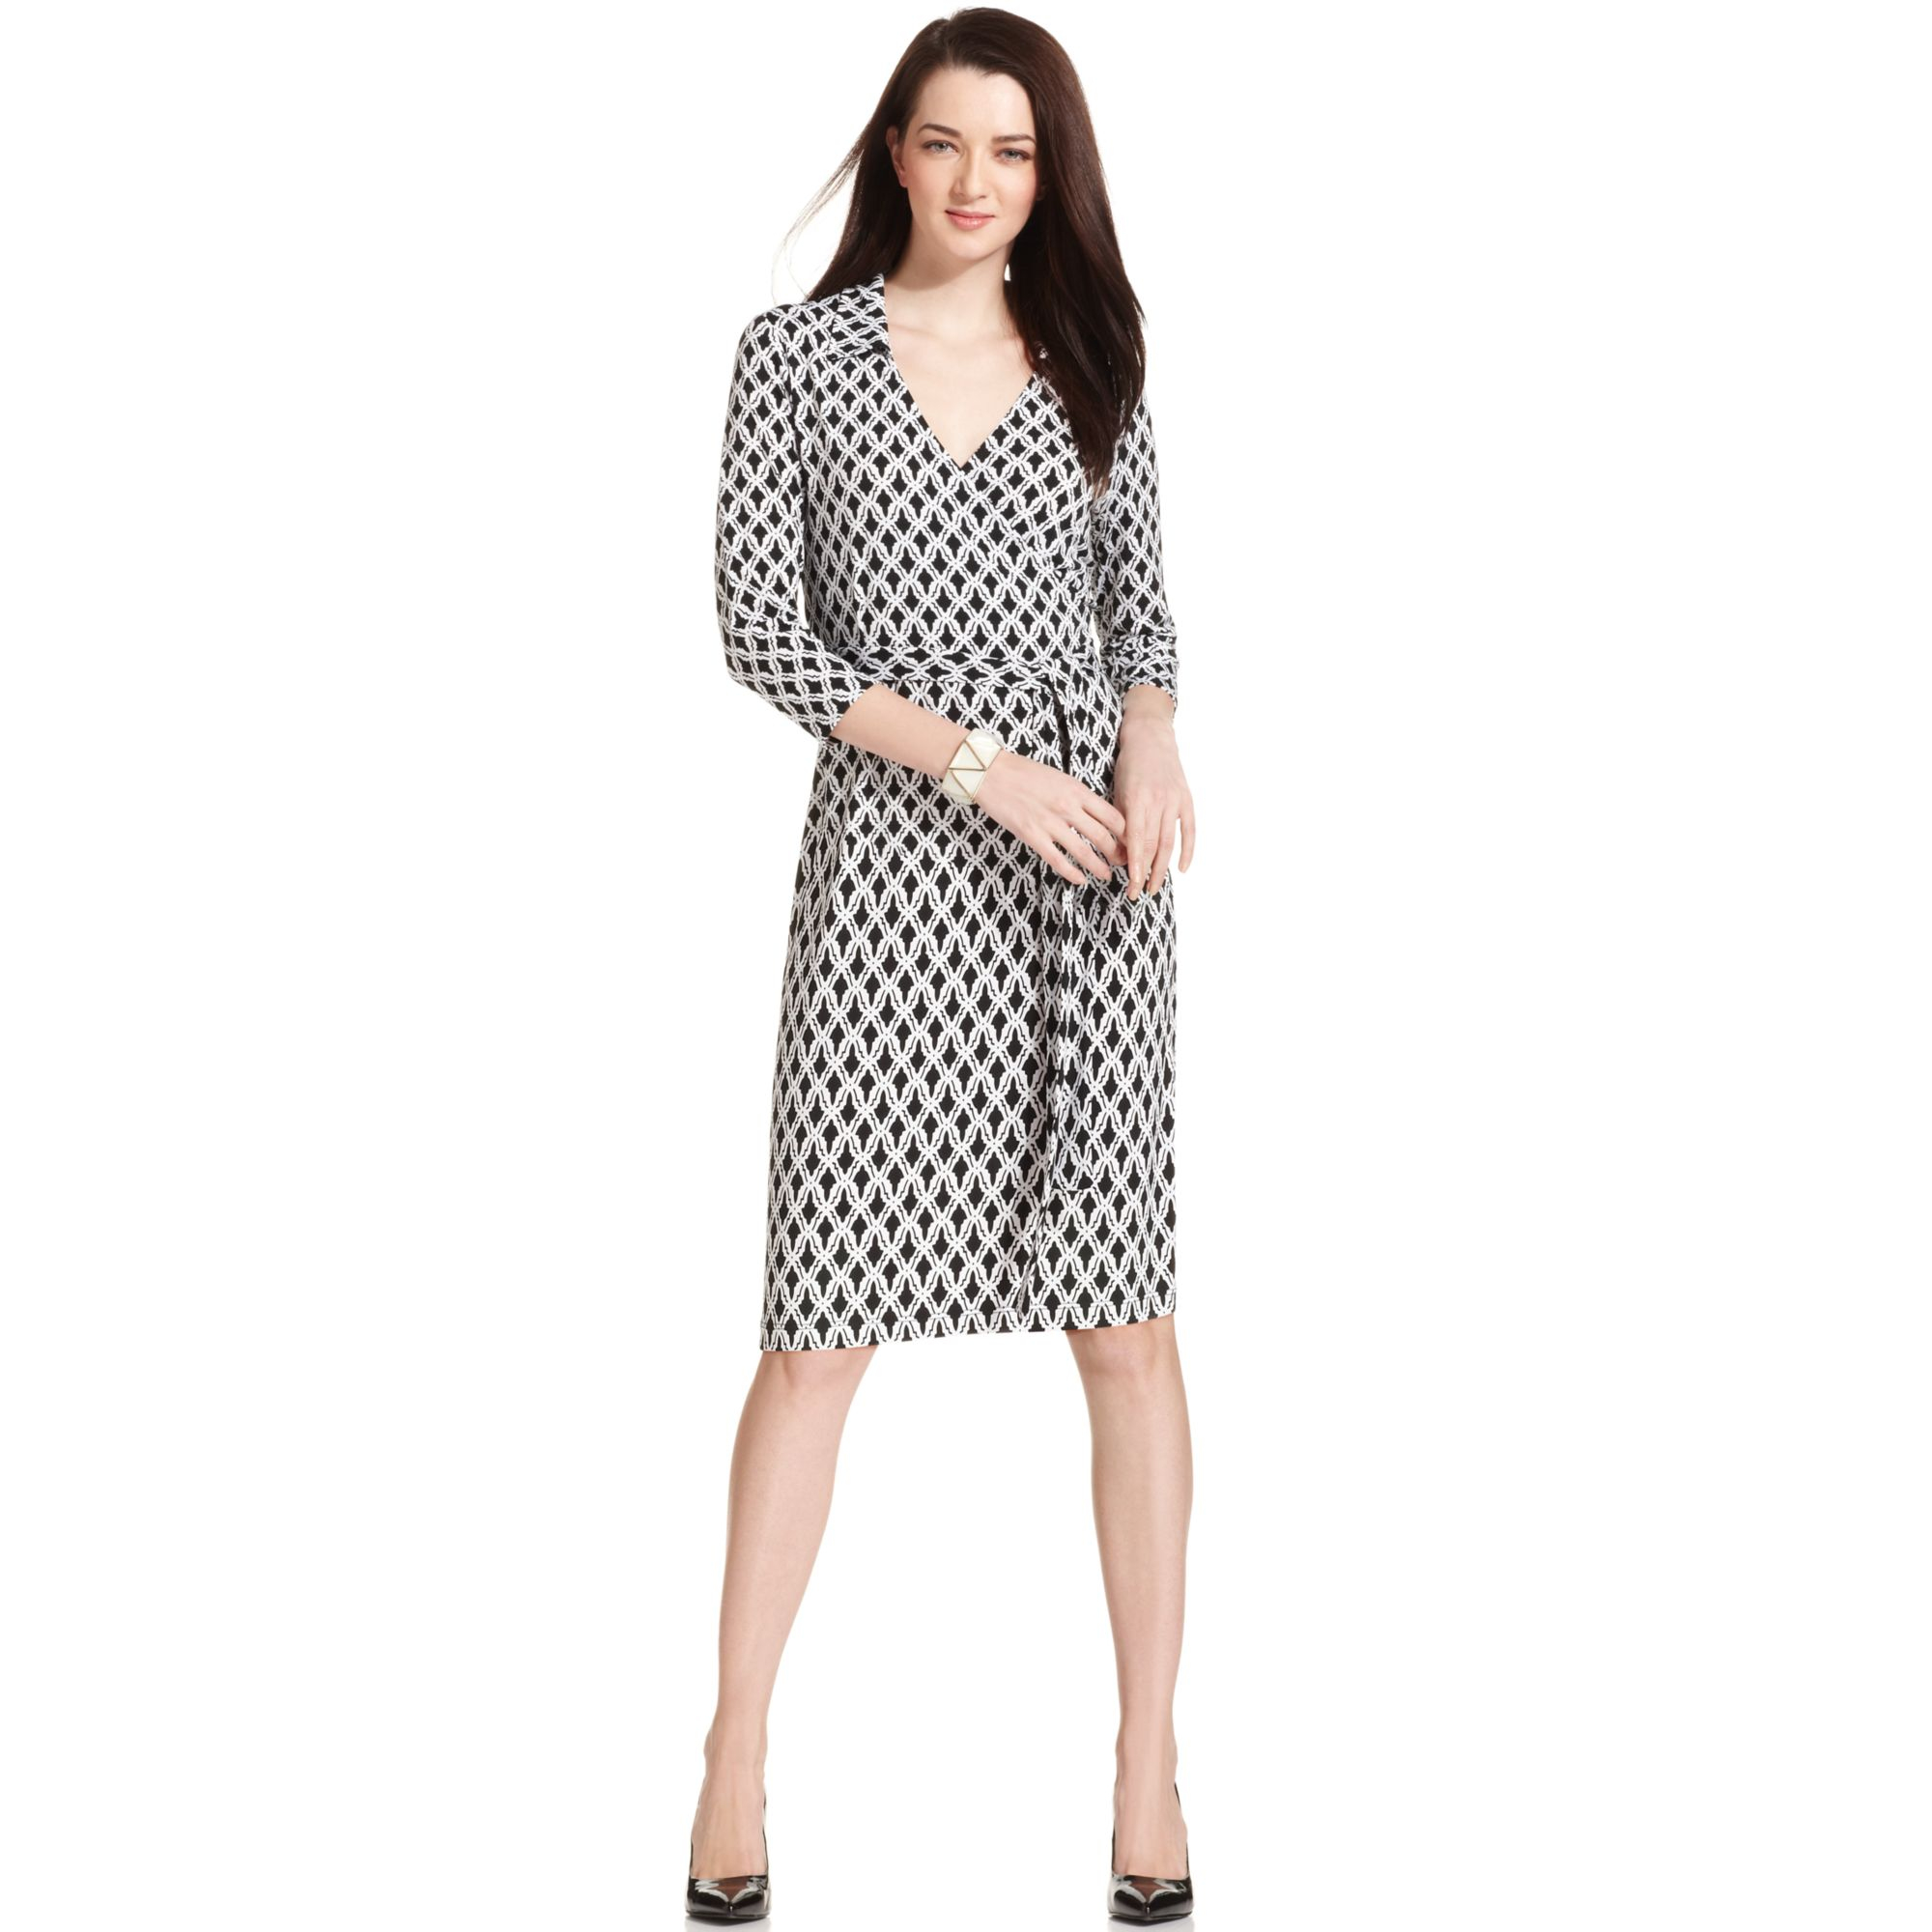 Jones Of New York Dresses Plus Size - Dress Foto and Picture